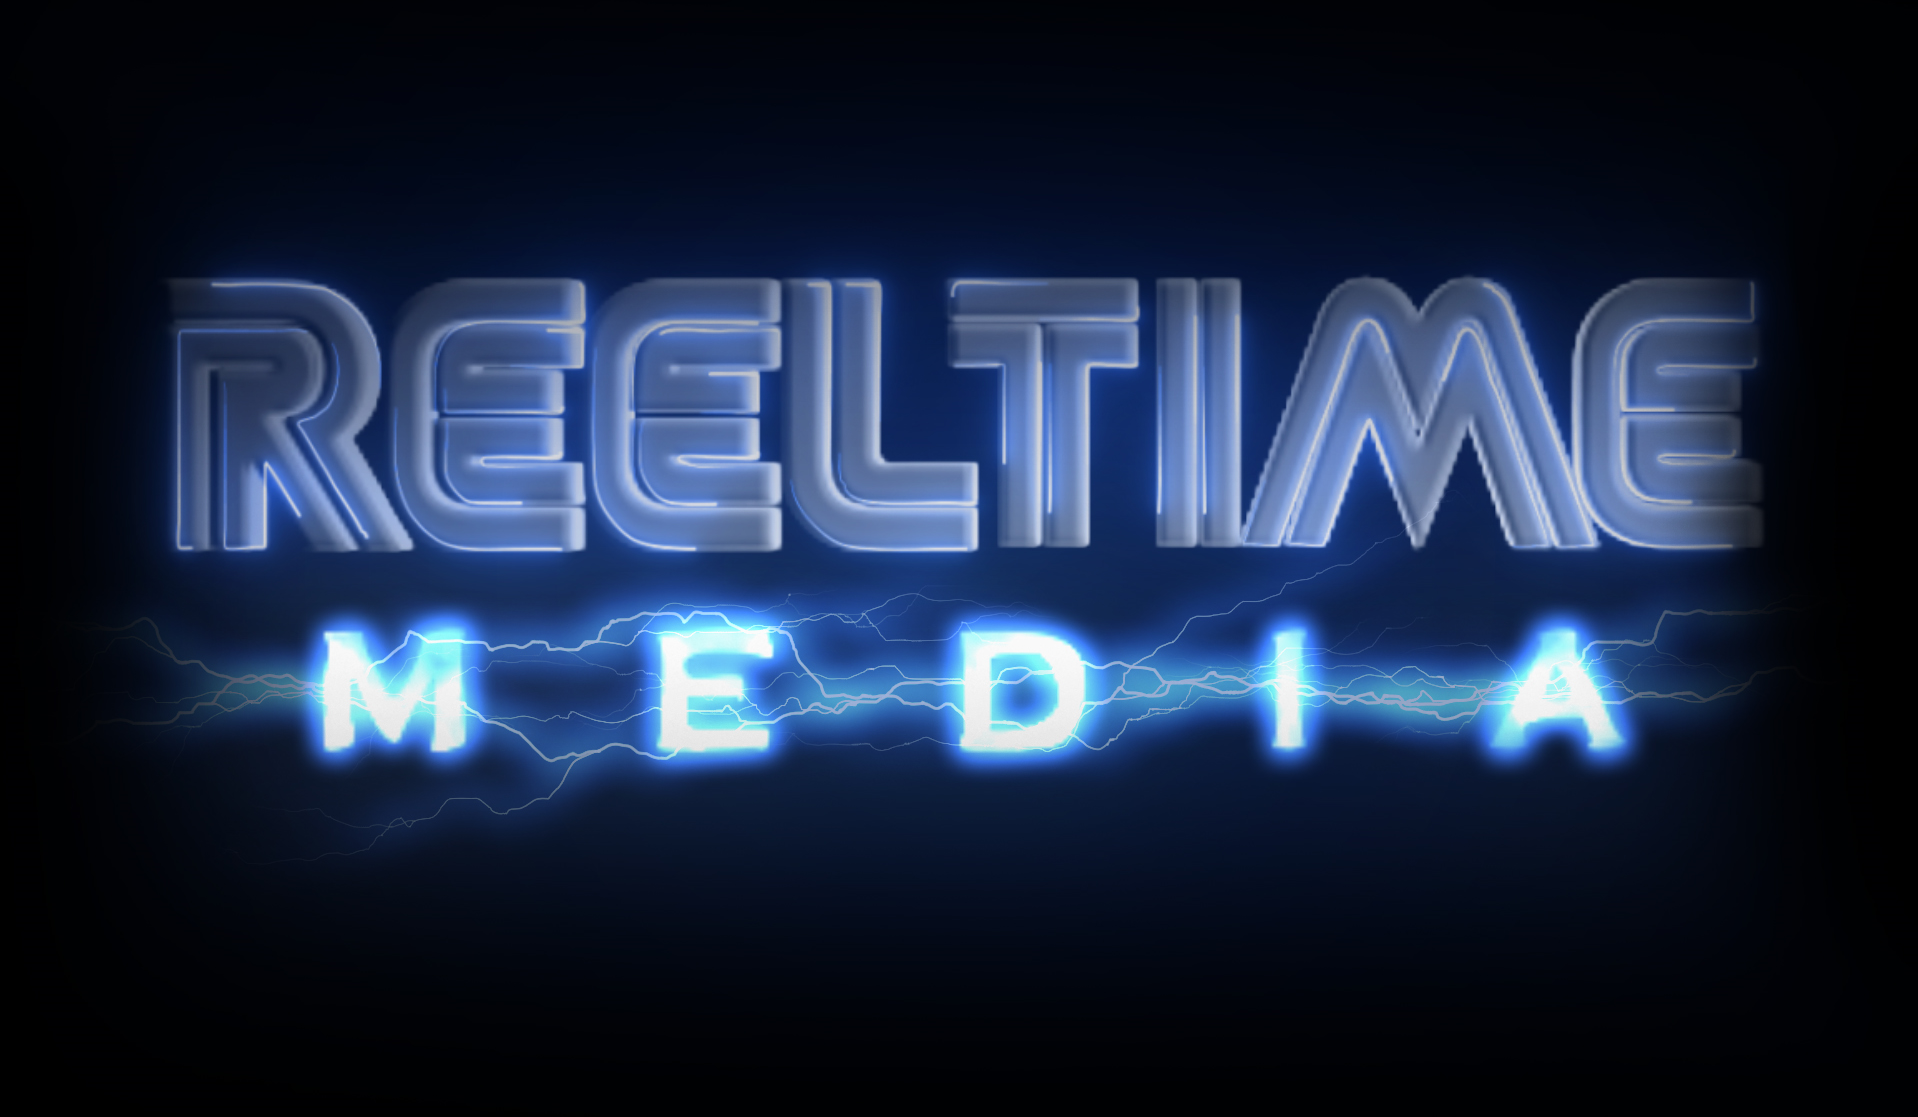 ReelTime and VaporBrands Sign Product Development and Marketing Agreement Making ReelTime a Notable Shareholder